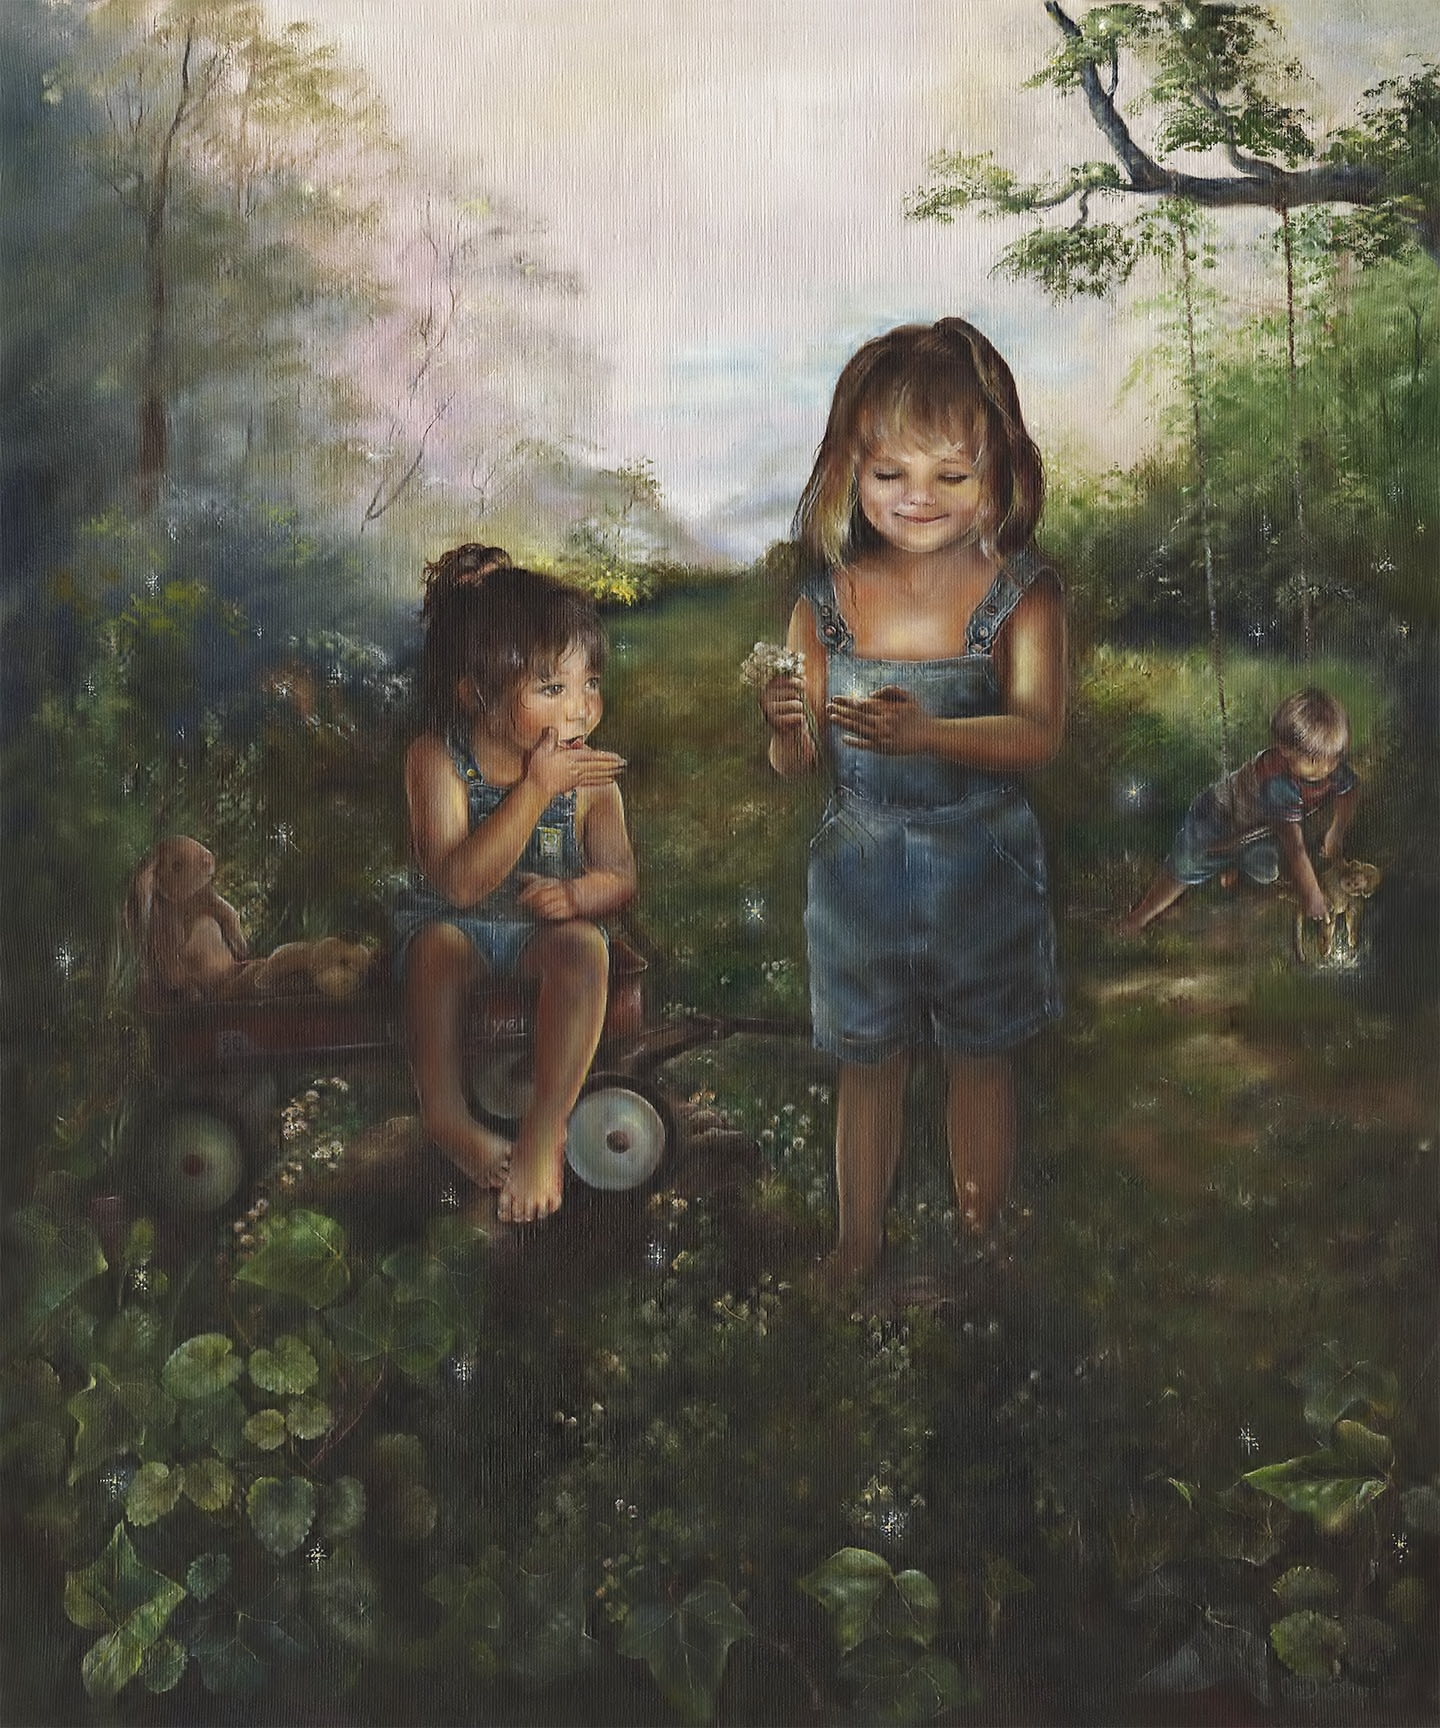 CHILDREN PLAYING WITH FIREFLIES OR LIGHTING BUGS